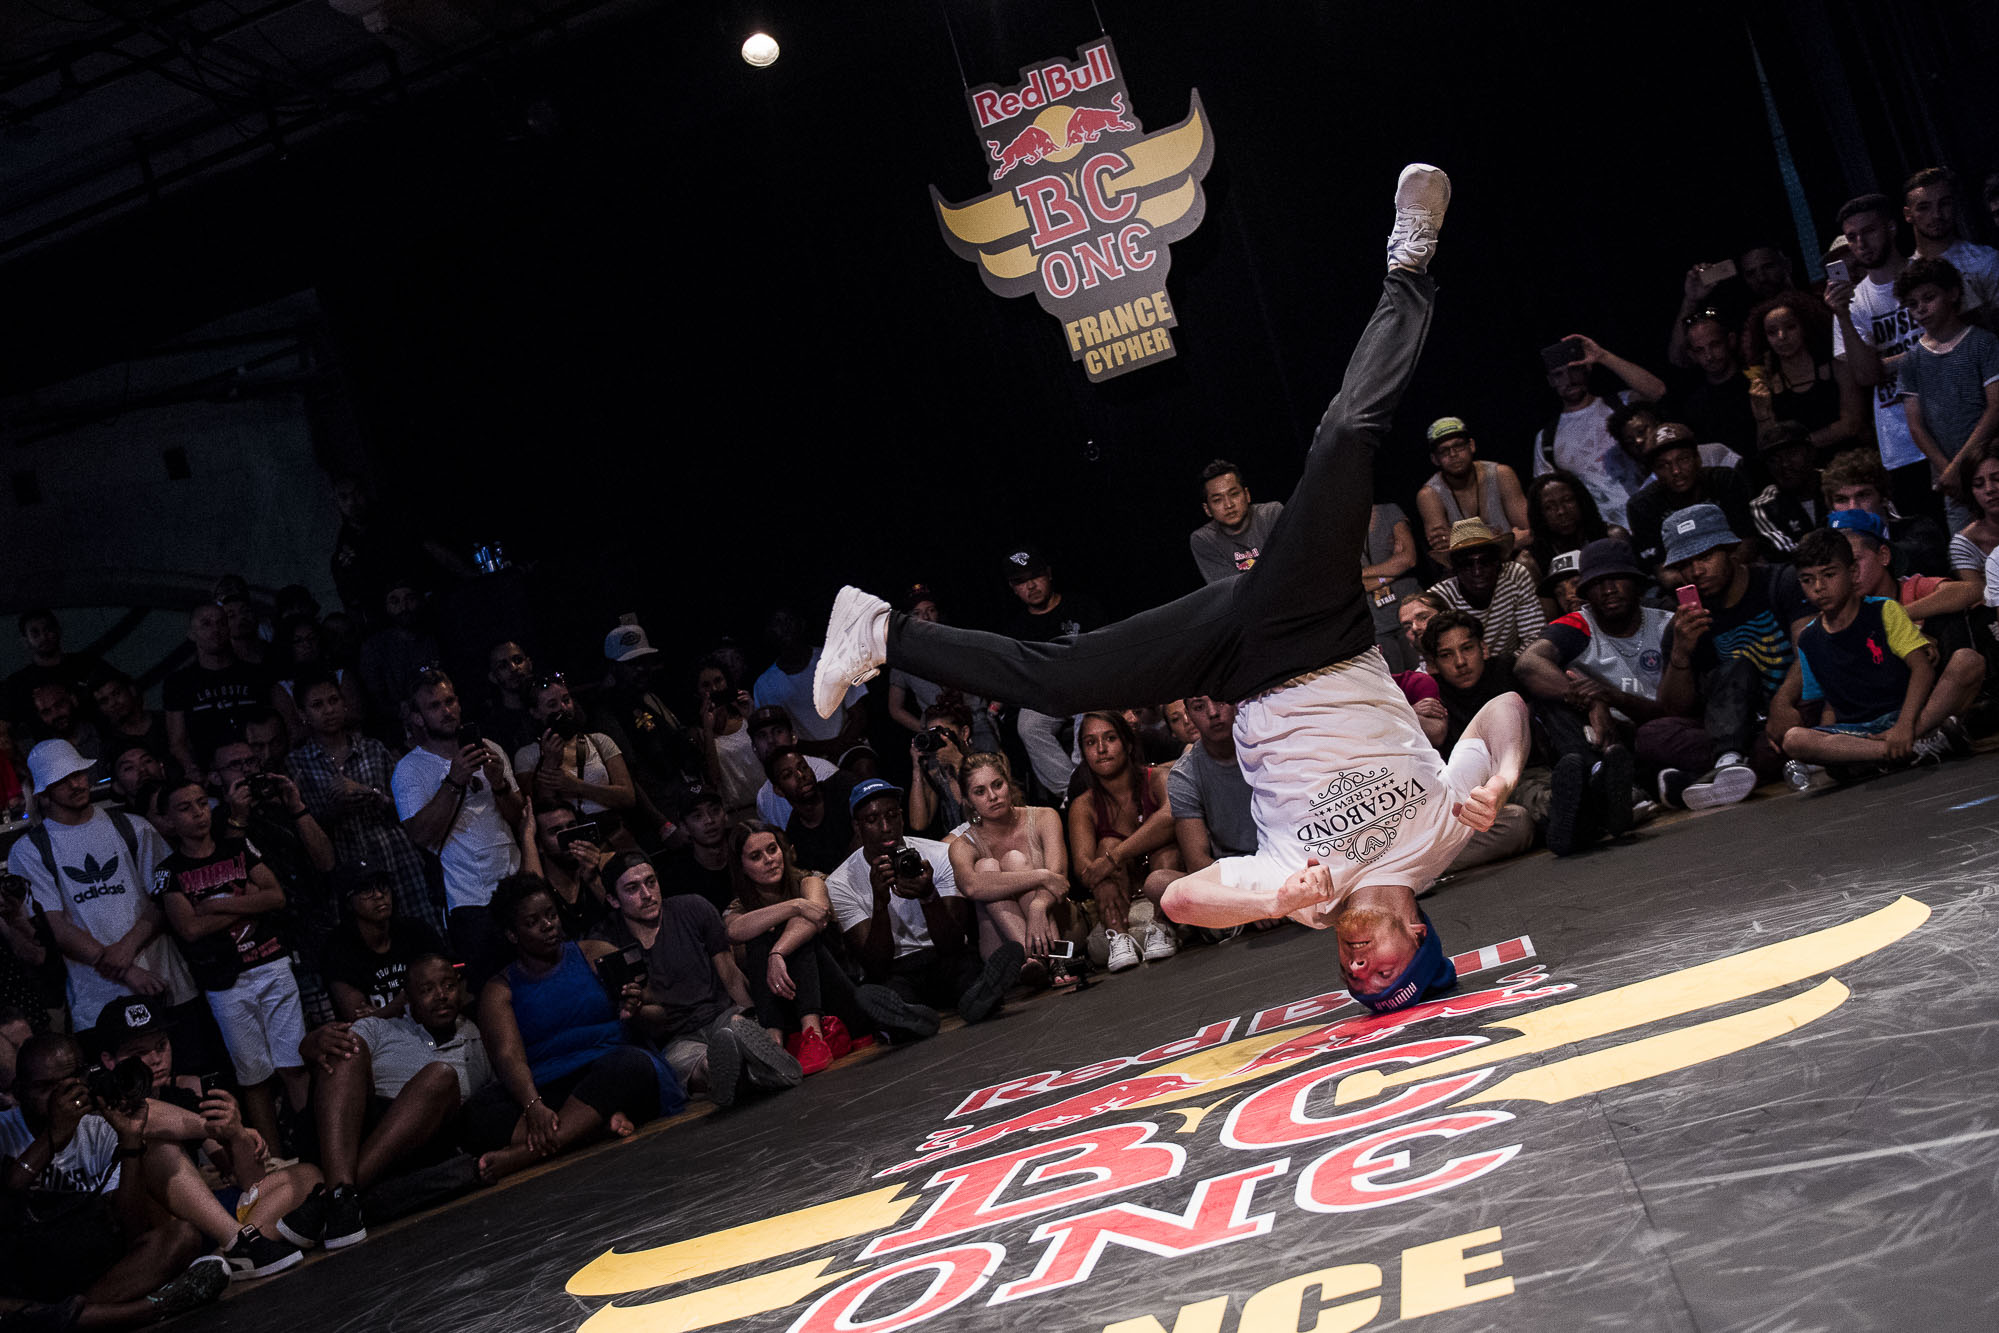 Lil Kev competes at the WIP Villette during the Red Bull BC One France Cypher Final in Paris, France on July 10th 2016.